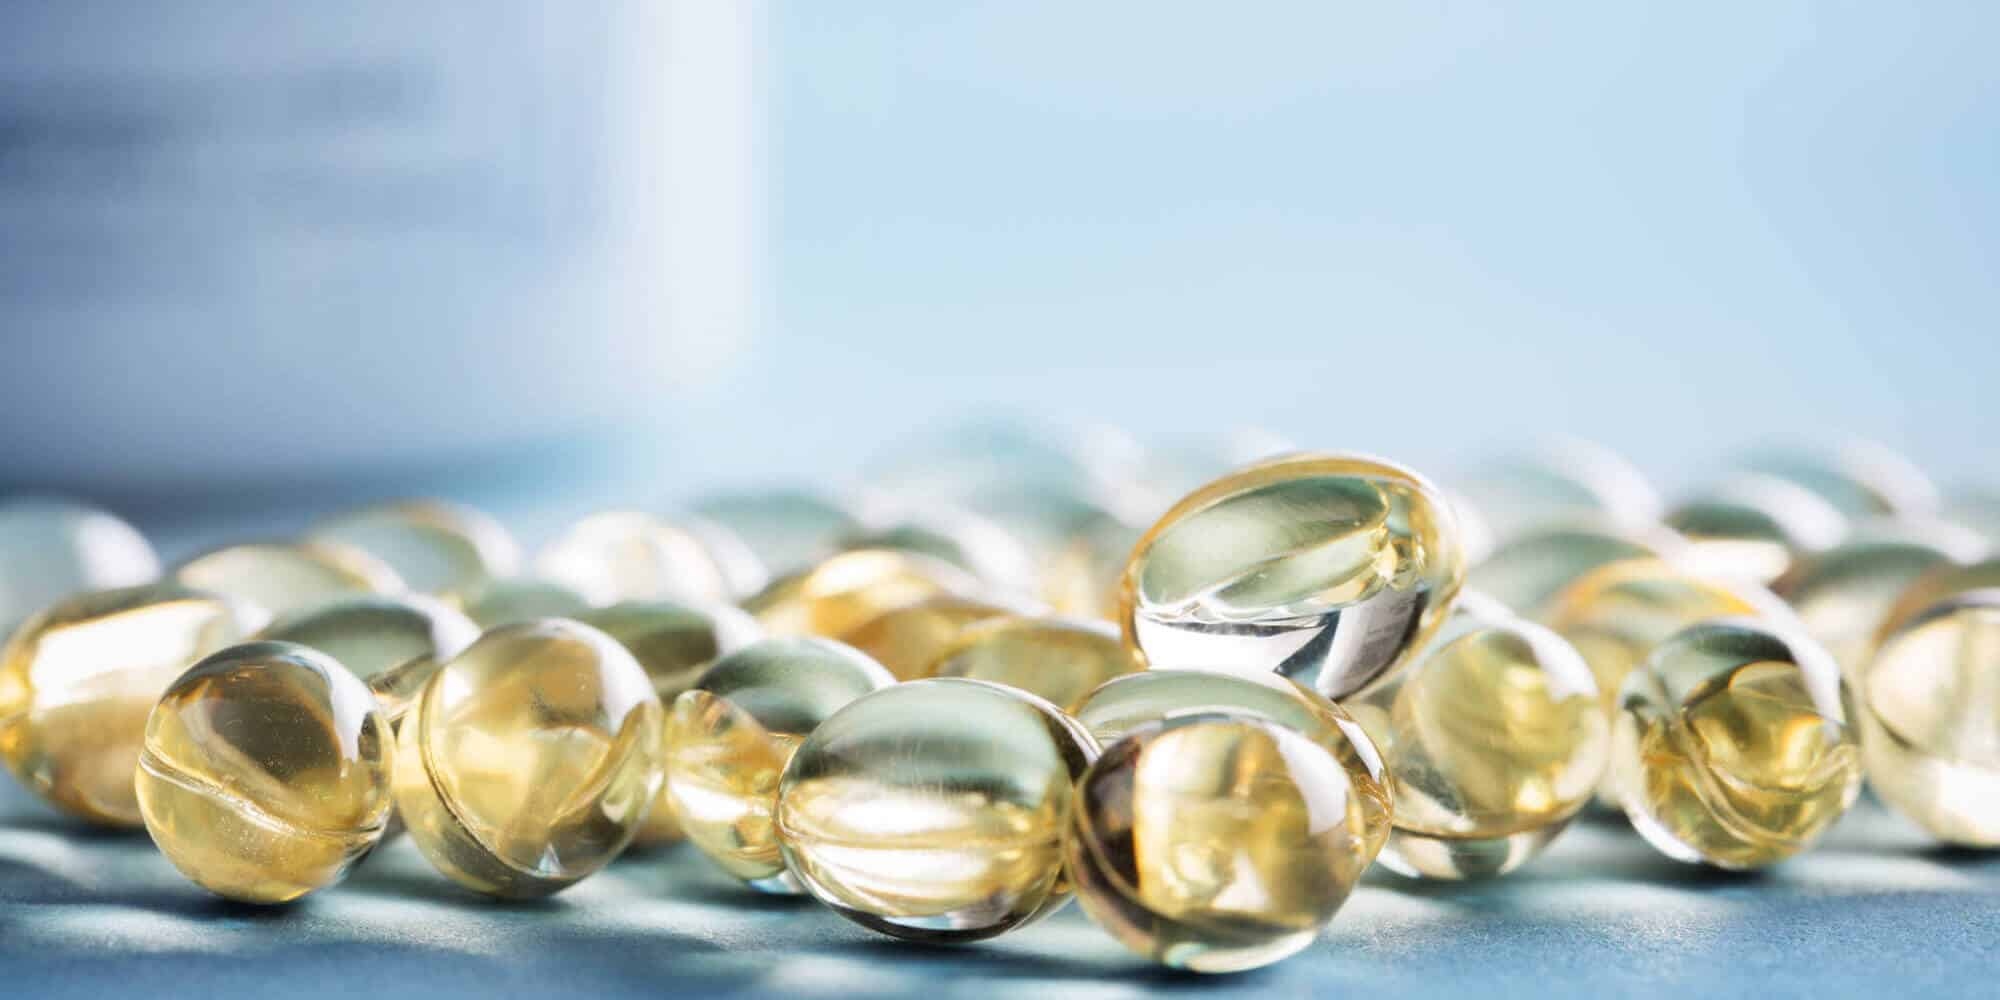 fish oil supplements before surgery